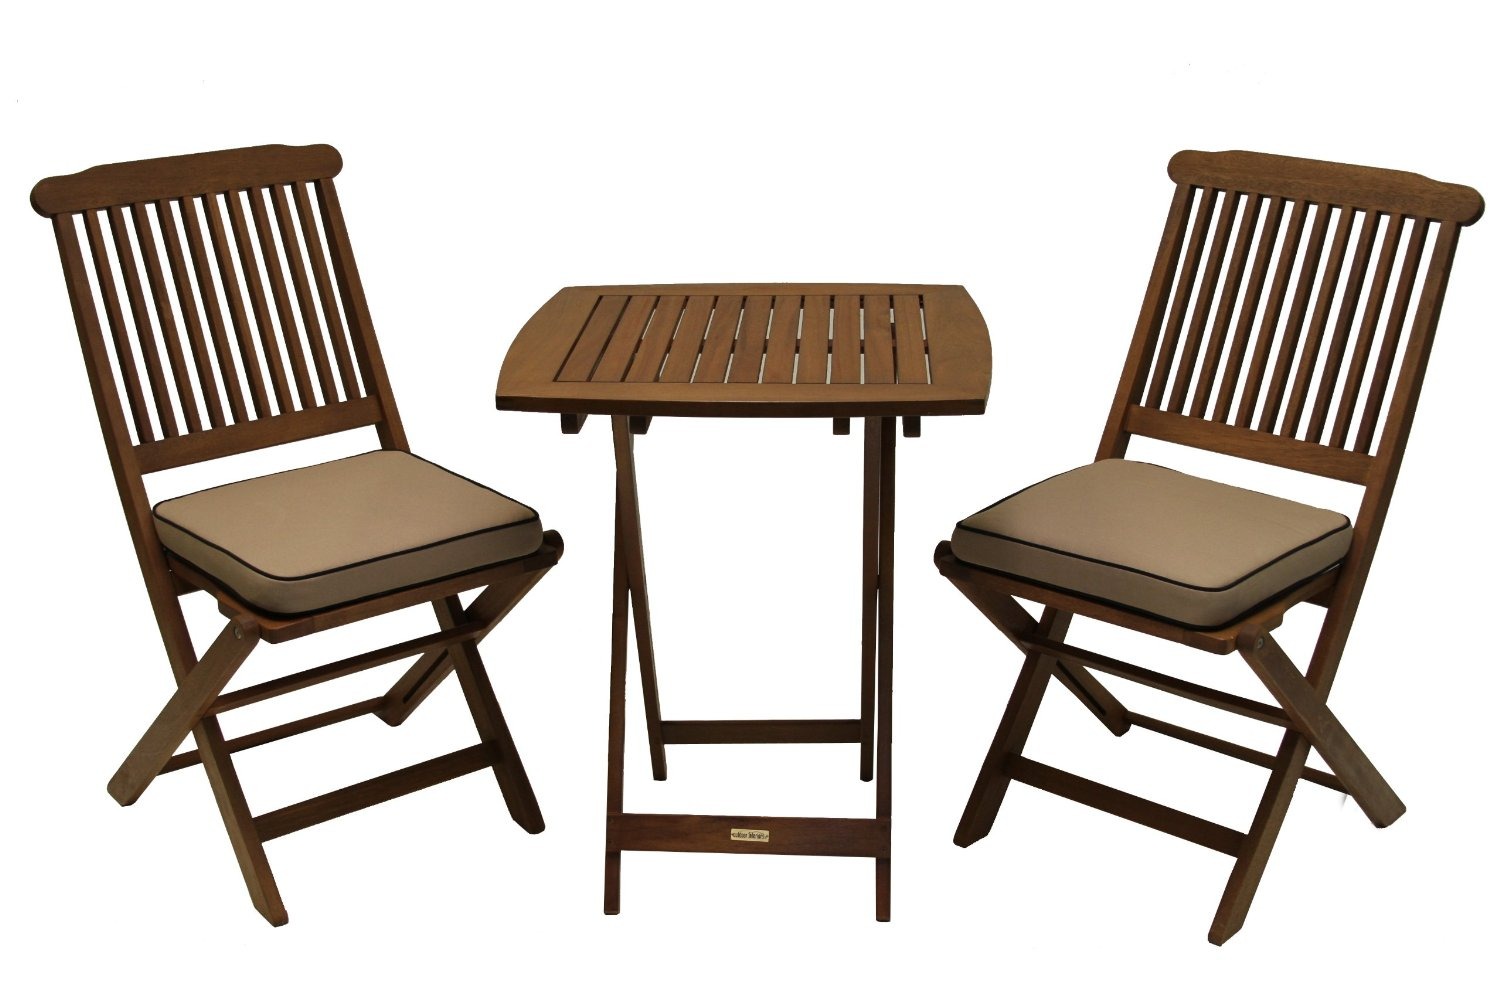 Patio furniture images july 2014 for Deck table and chairs